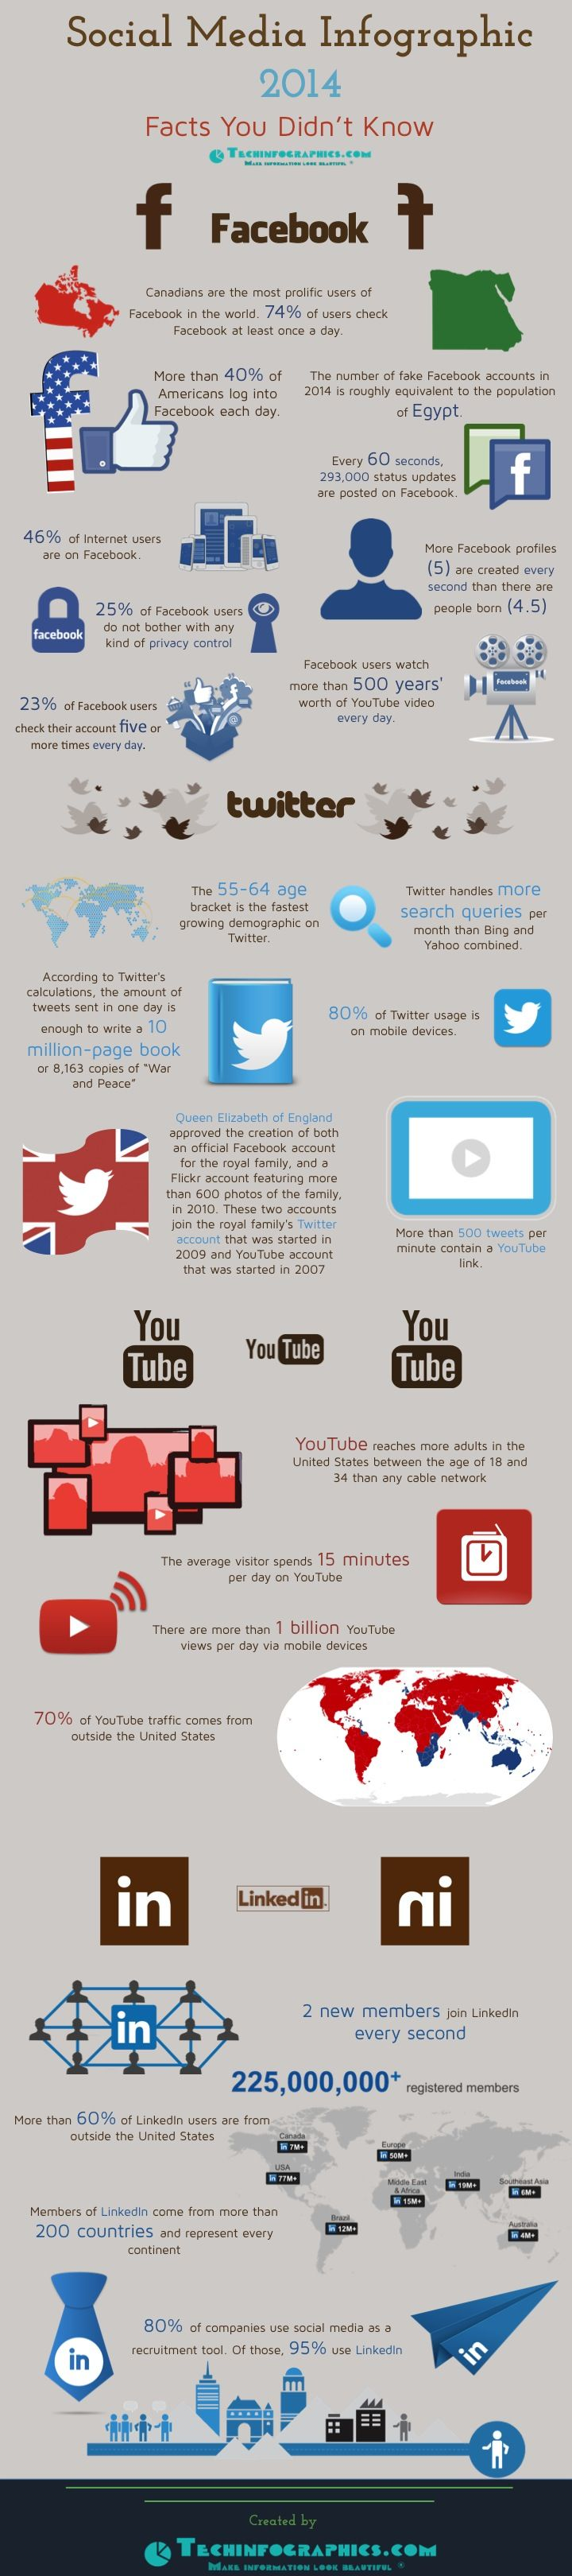 Social Media Infographic 2014 - Facts You Didn't Know - #SocialMedia #Infographic #pikock www.pikock.com